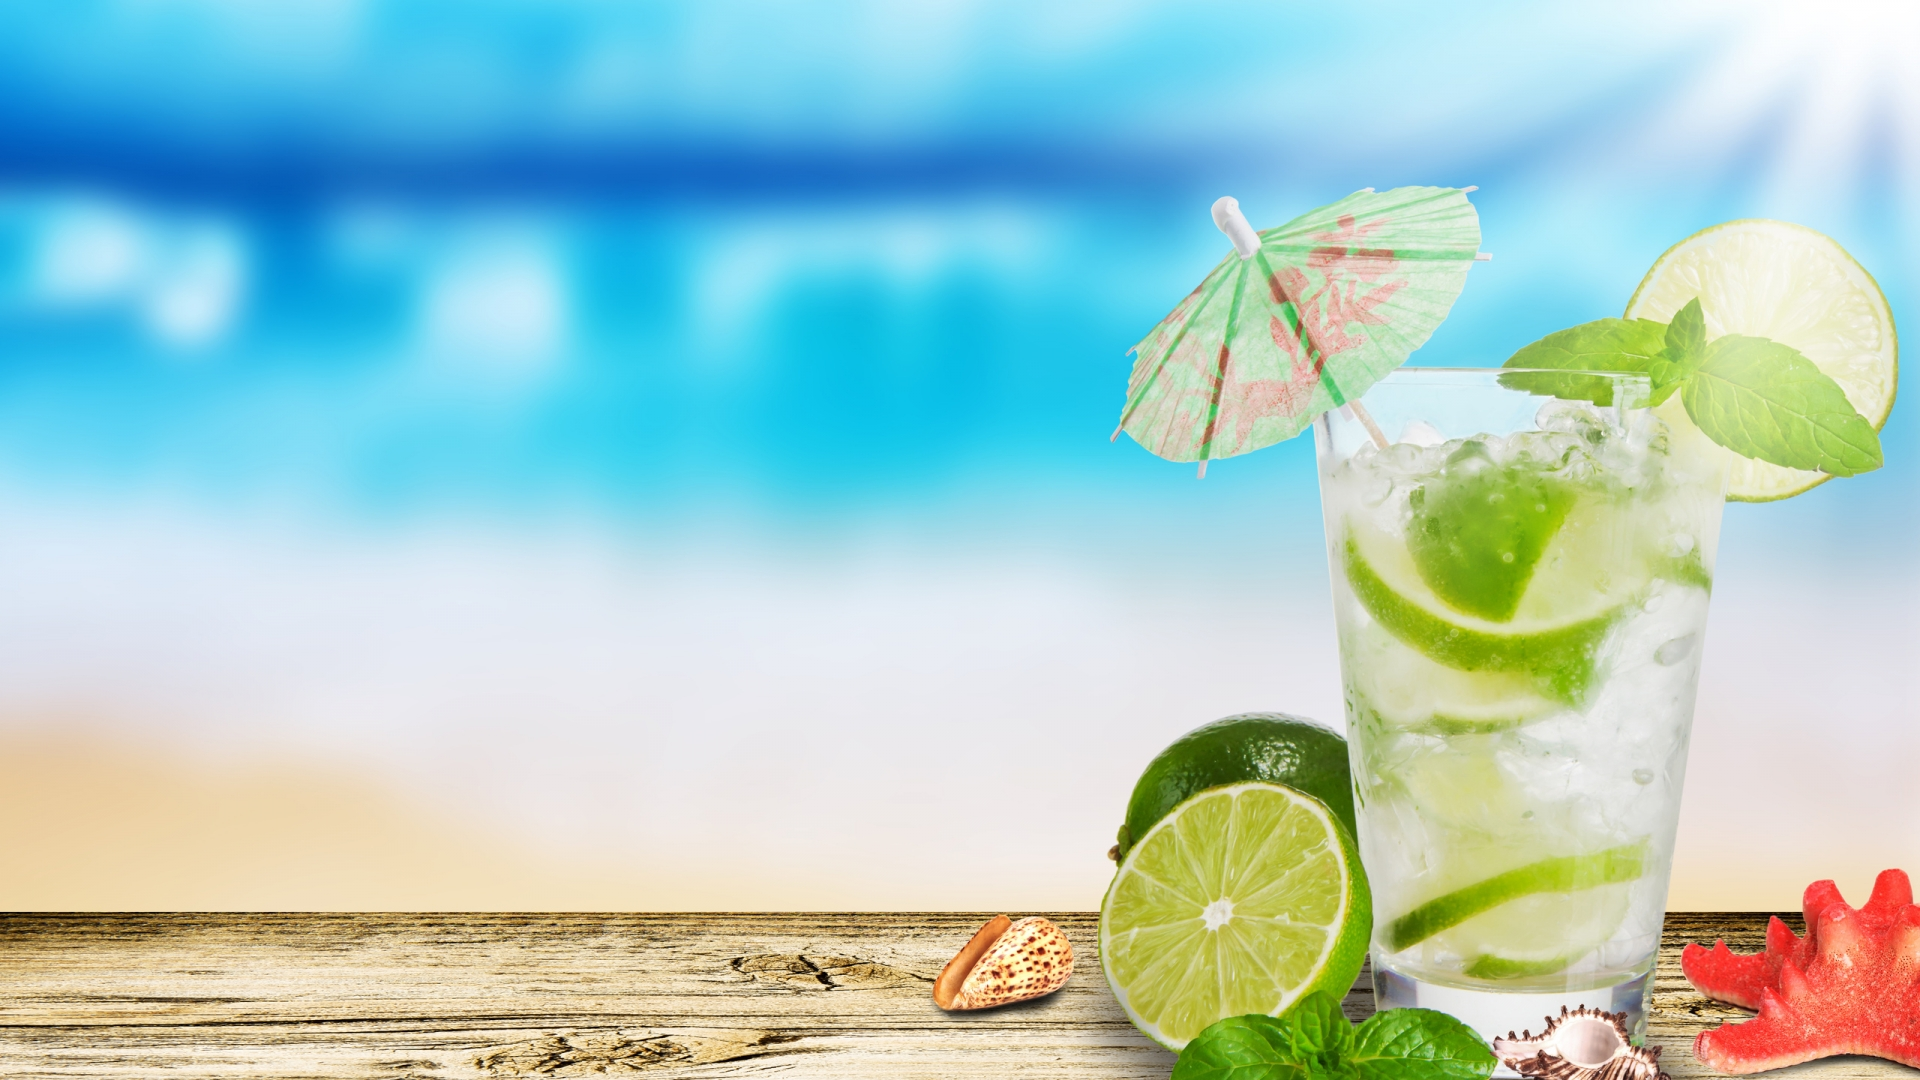 mojito-cocktail-wallpaper